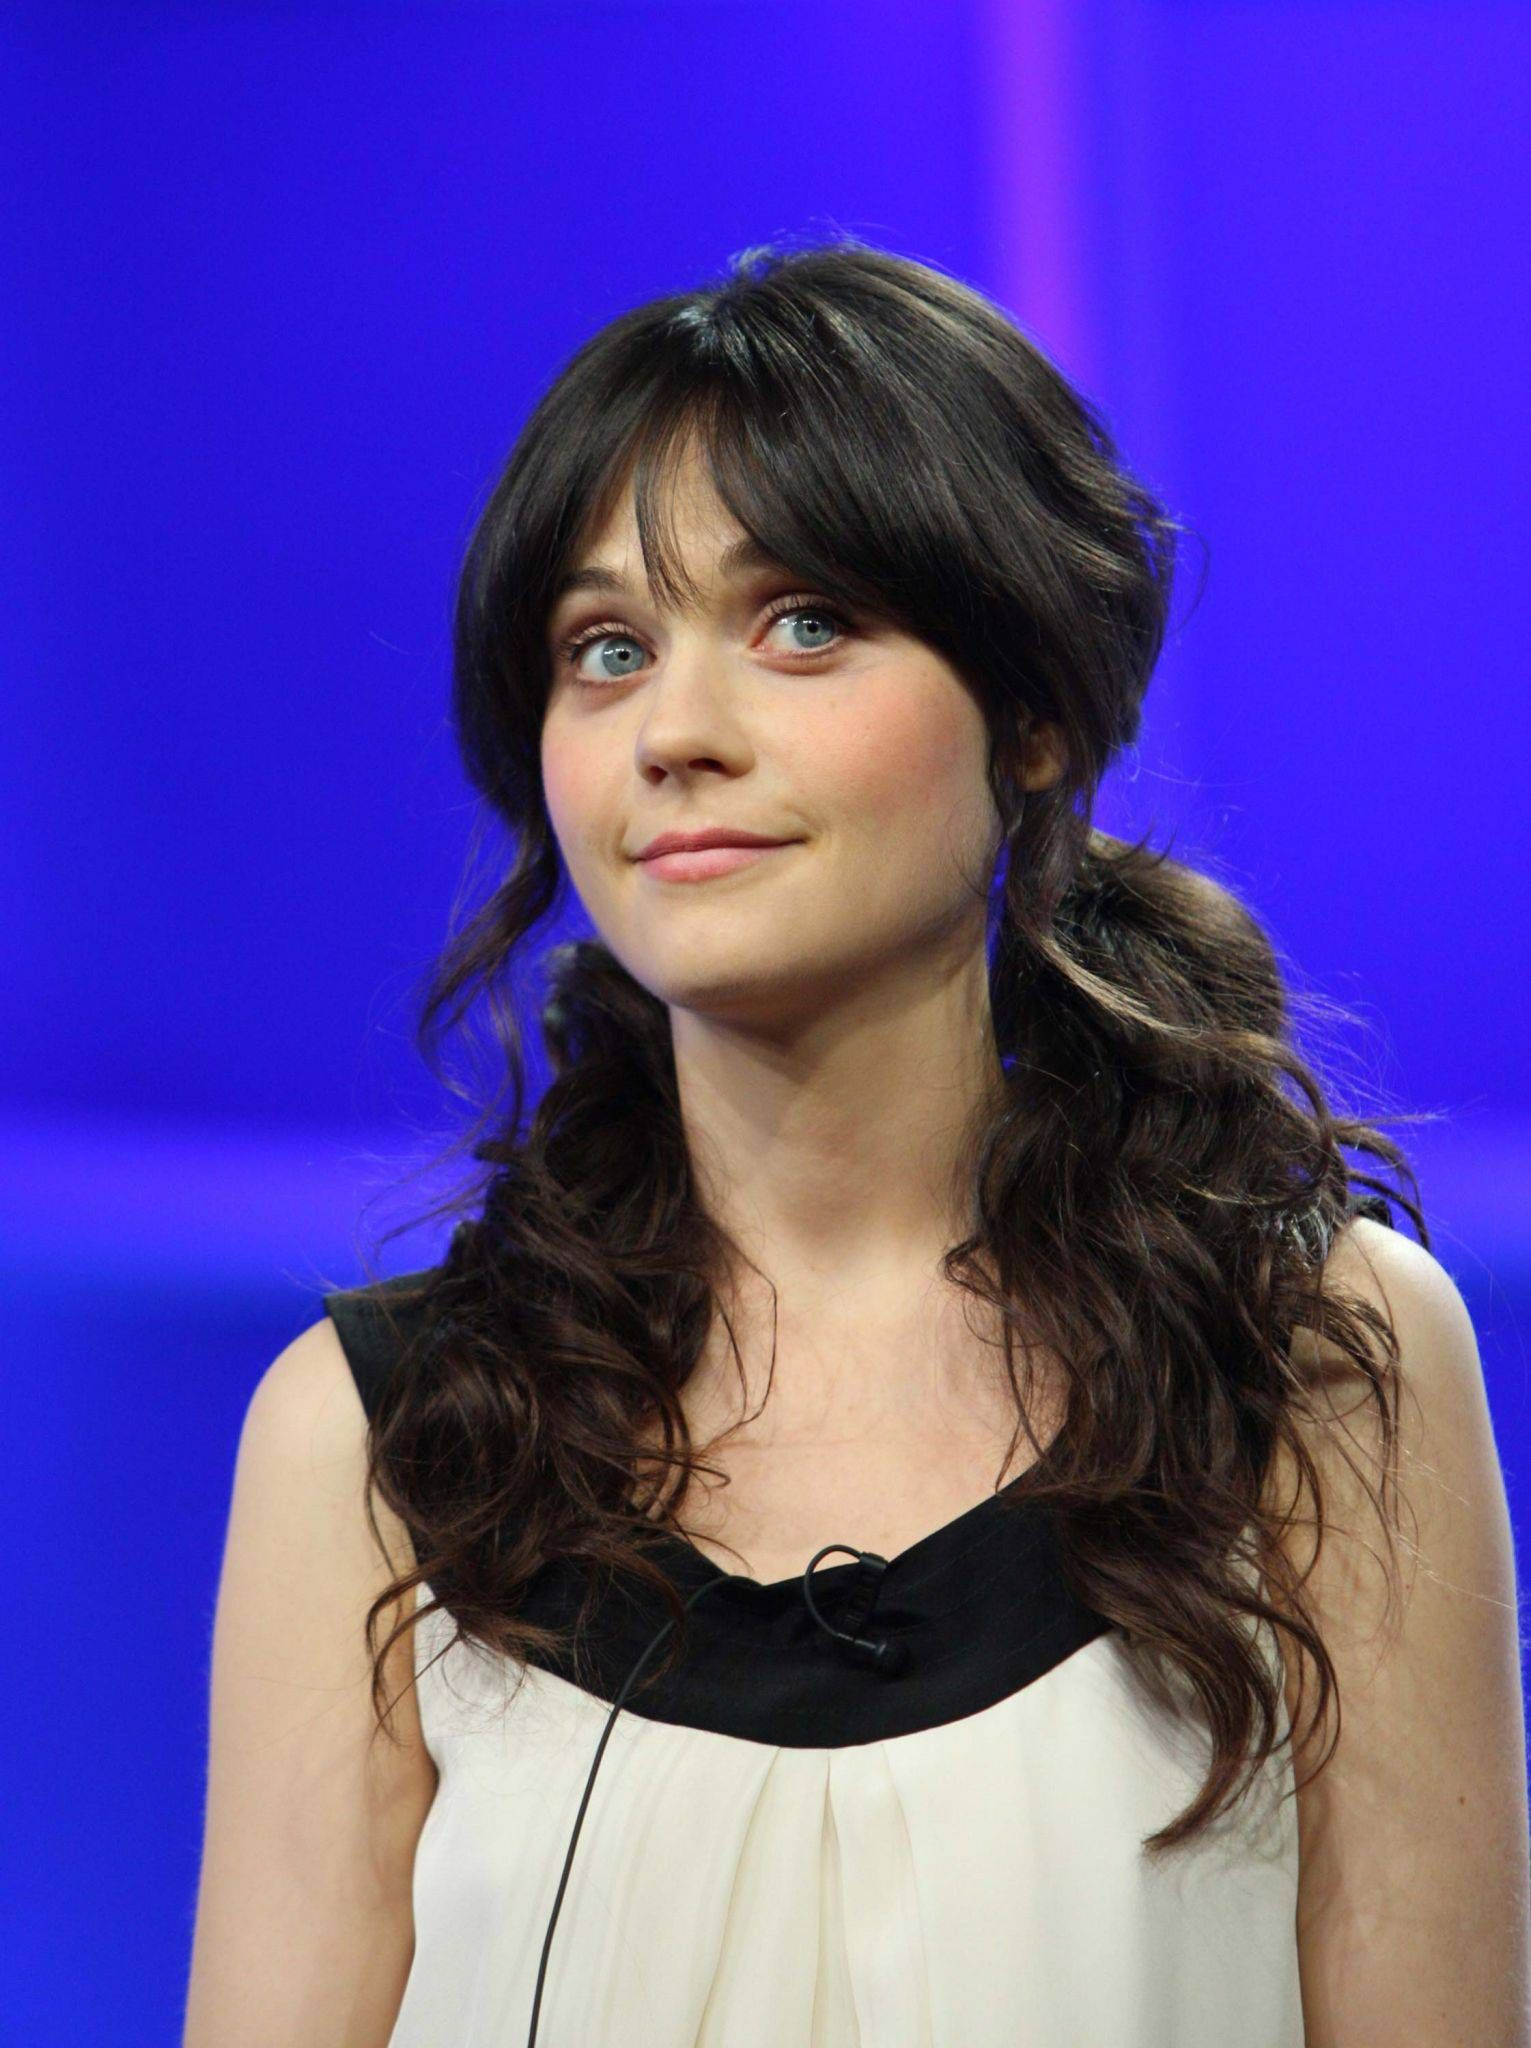 zooey deschanel wikizooey deschanel hello, zooey deschanel hello скачать, zooey deschanel 2017, zooey deschanel 2016, zooey deschanel sherlock, zooey deschanel gif, zooey deschanel sugar town, zooey deschanel katy perry, zooey deschanel hello перевод, zooey deschanel vk, zooey deschanel sugar town перевод, zooey deschanel and joseph gordon-levitt, zooey deschanel википедия, zooey deschanel фото, zooey deschanel фильмография, zooey deschanel hello минус, zooey deschanel wiki, zooey deschanel dance, zooey deschanel ukulele, zooey deschanel yes man перевод